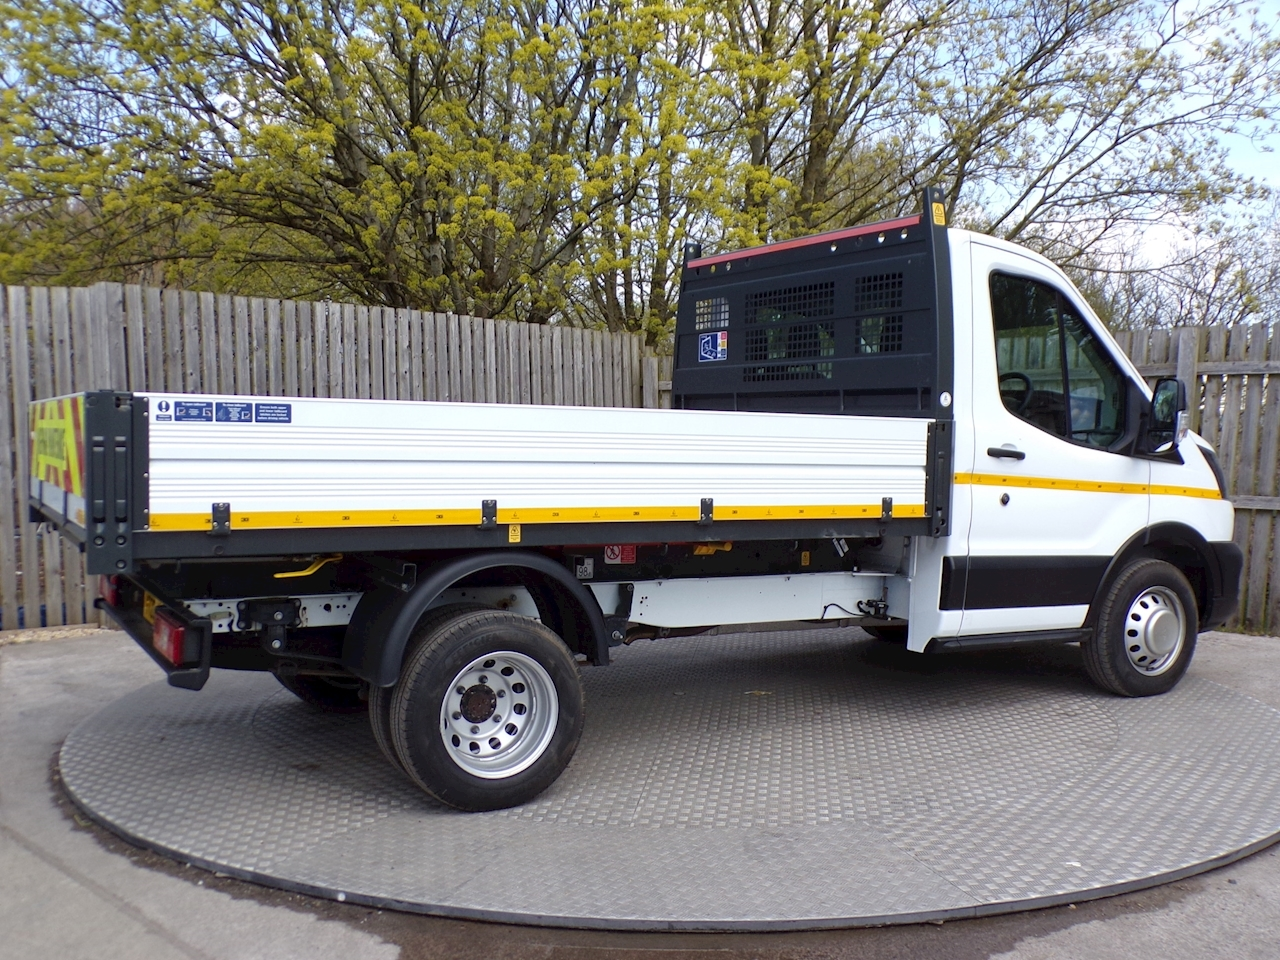 Ford Transit 350 LEADER S/C Tipper 1 Stop Body Euro6